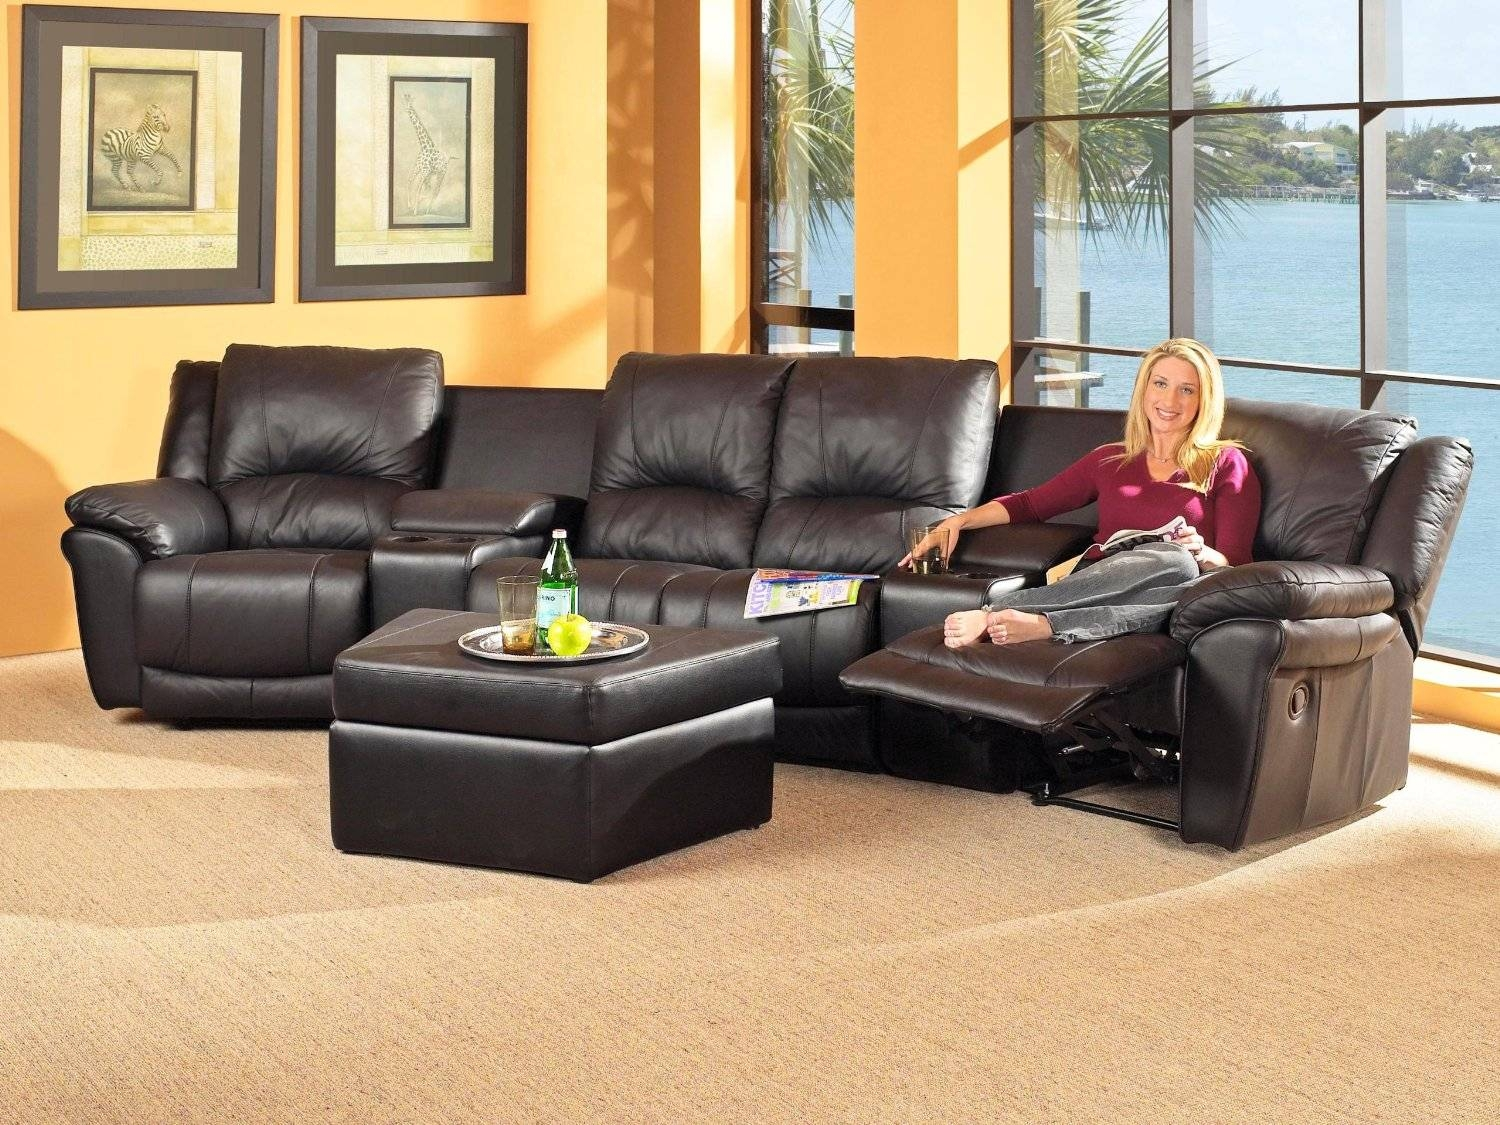 Amazing Sectional Sofas For Small Spaces With Recliners 89 For for Slipcovers For Sectional Sofas With Recliners (Image 1 of 30)